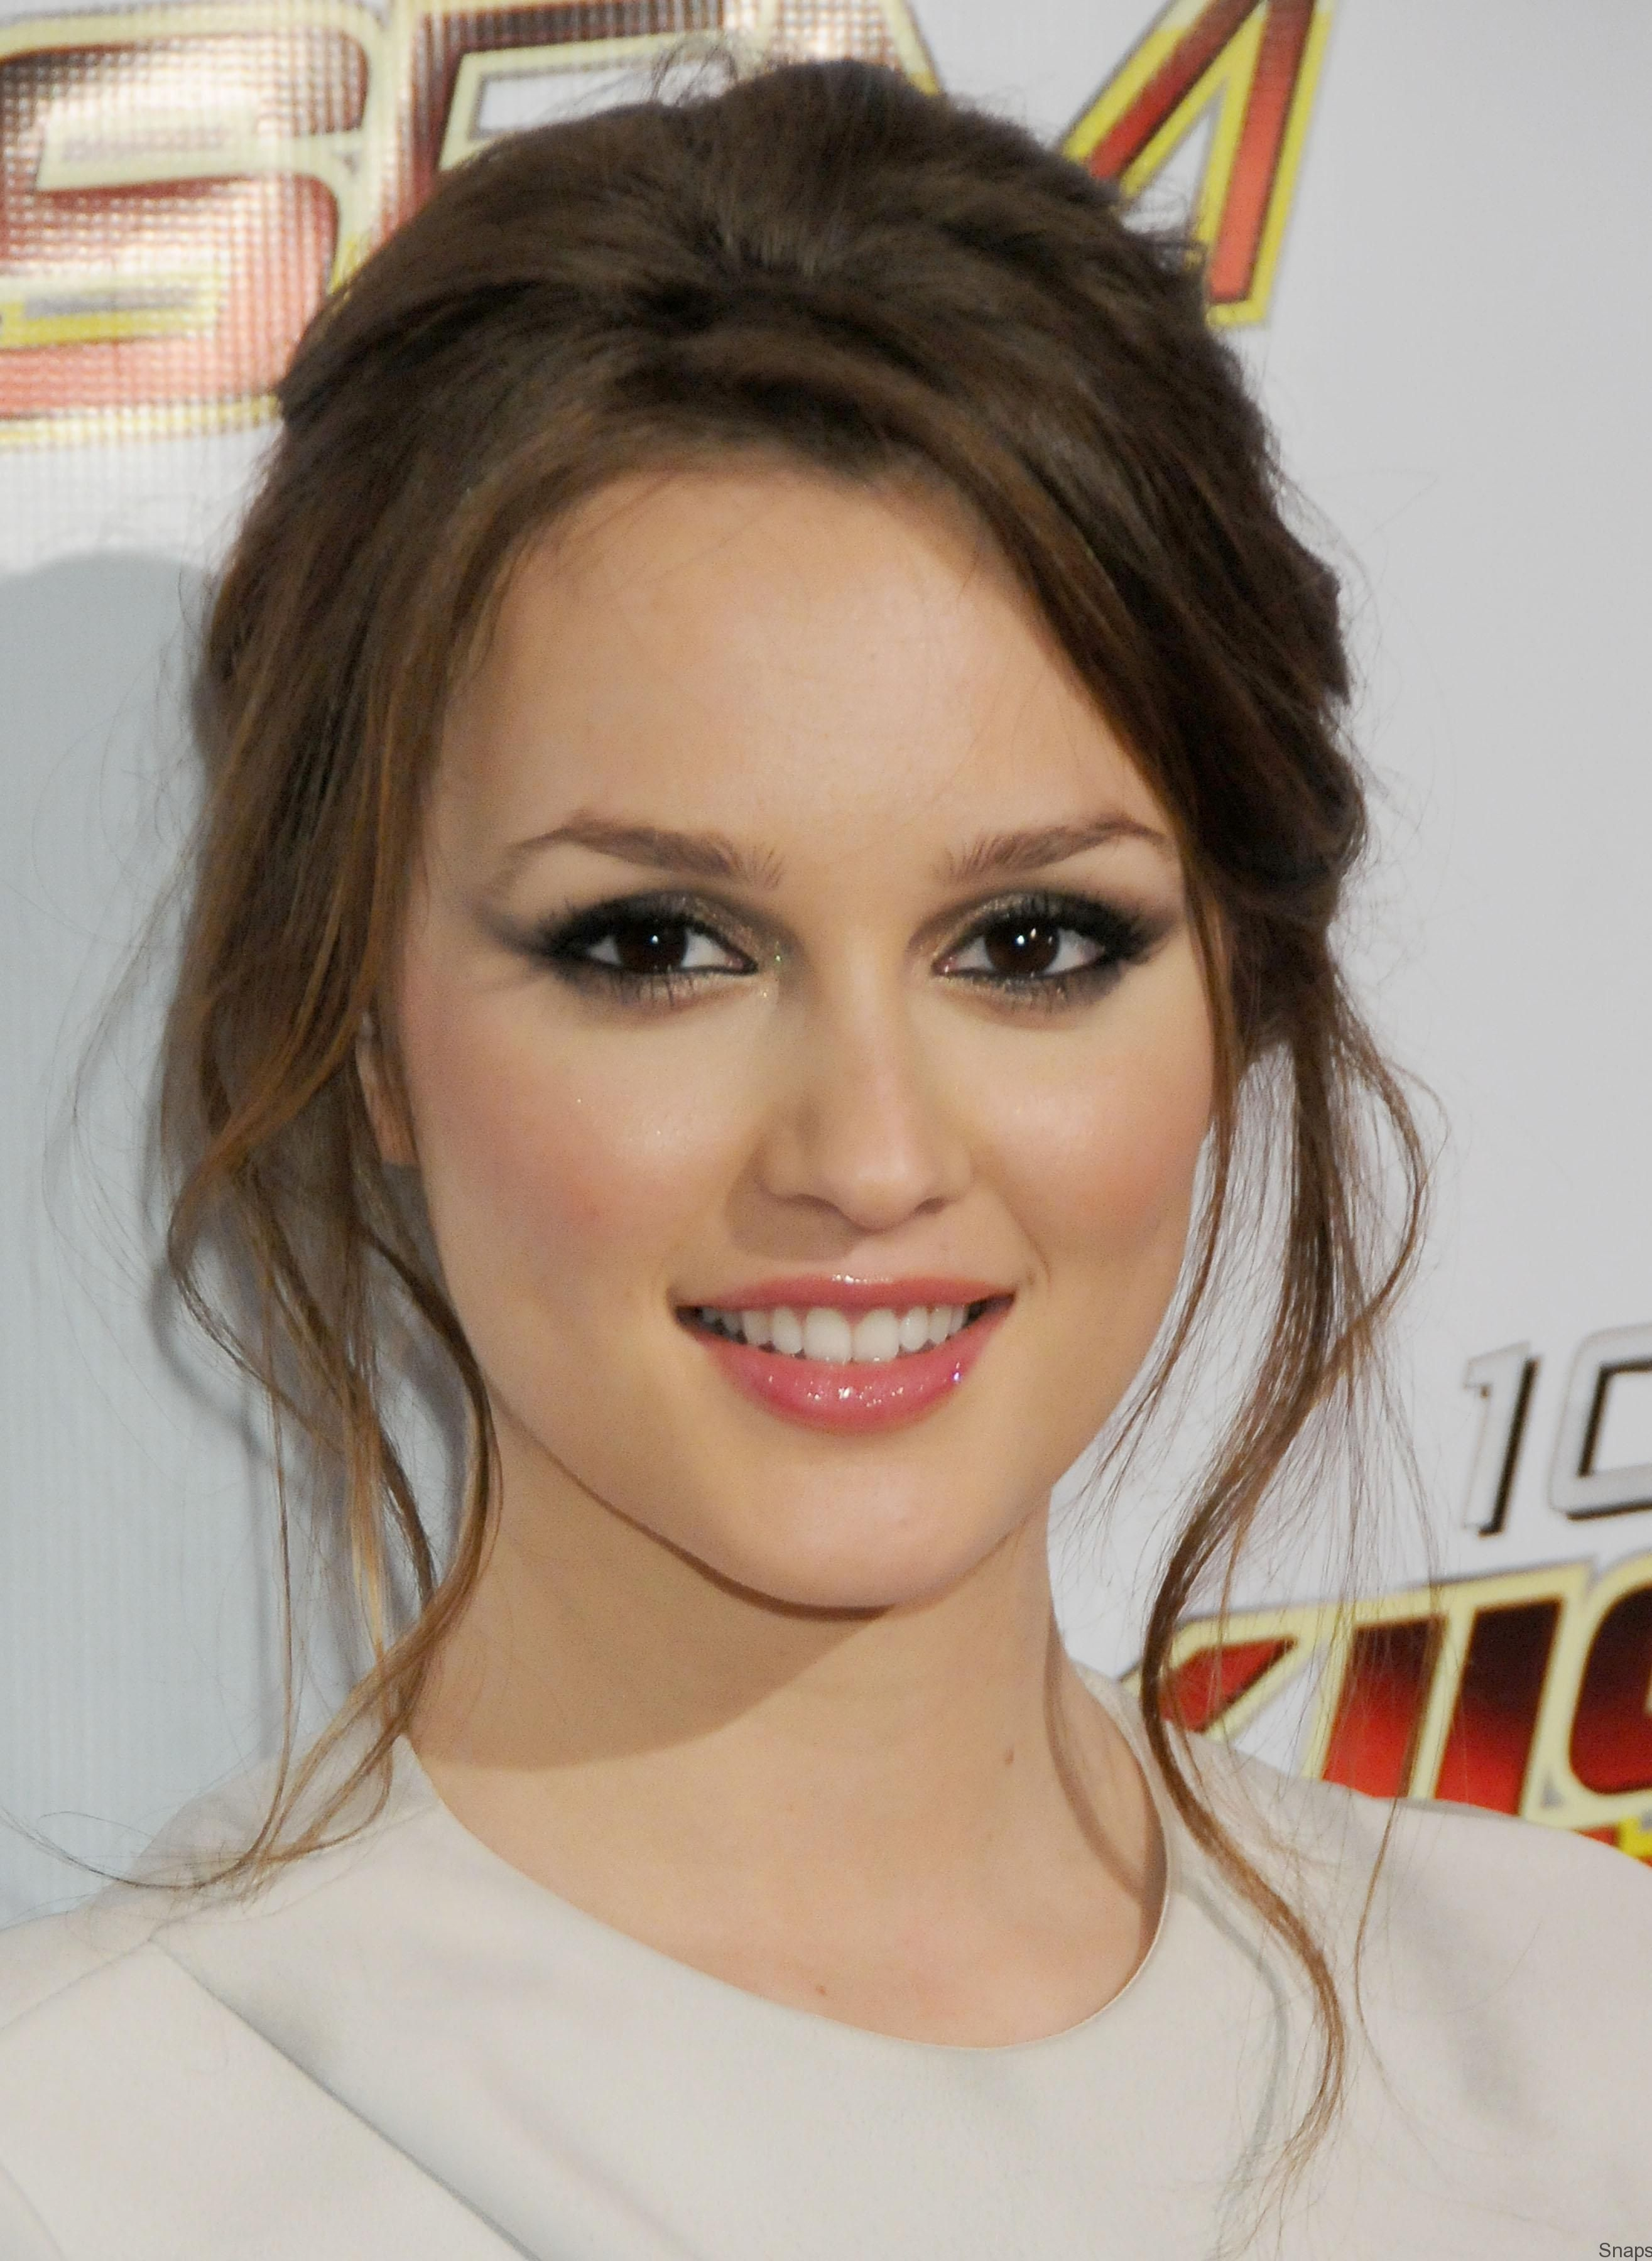 Viewing gallery for leighton meester 2009 wallpapers viewing gallery for leighton meester 2009 wallpapers baditri Gallery